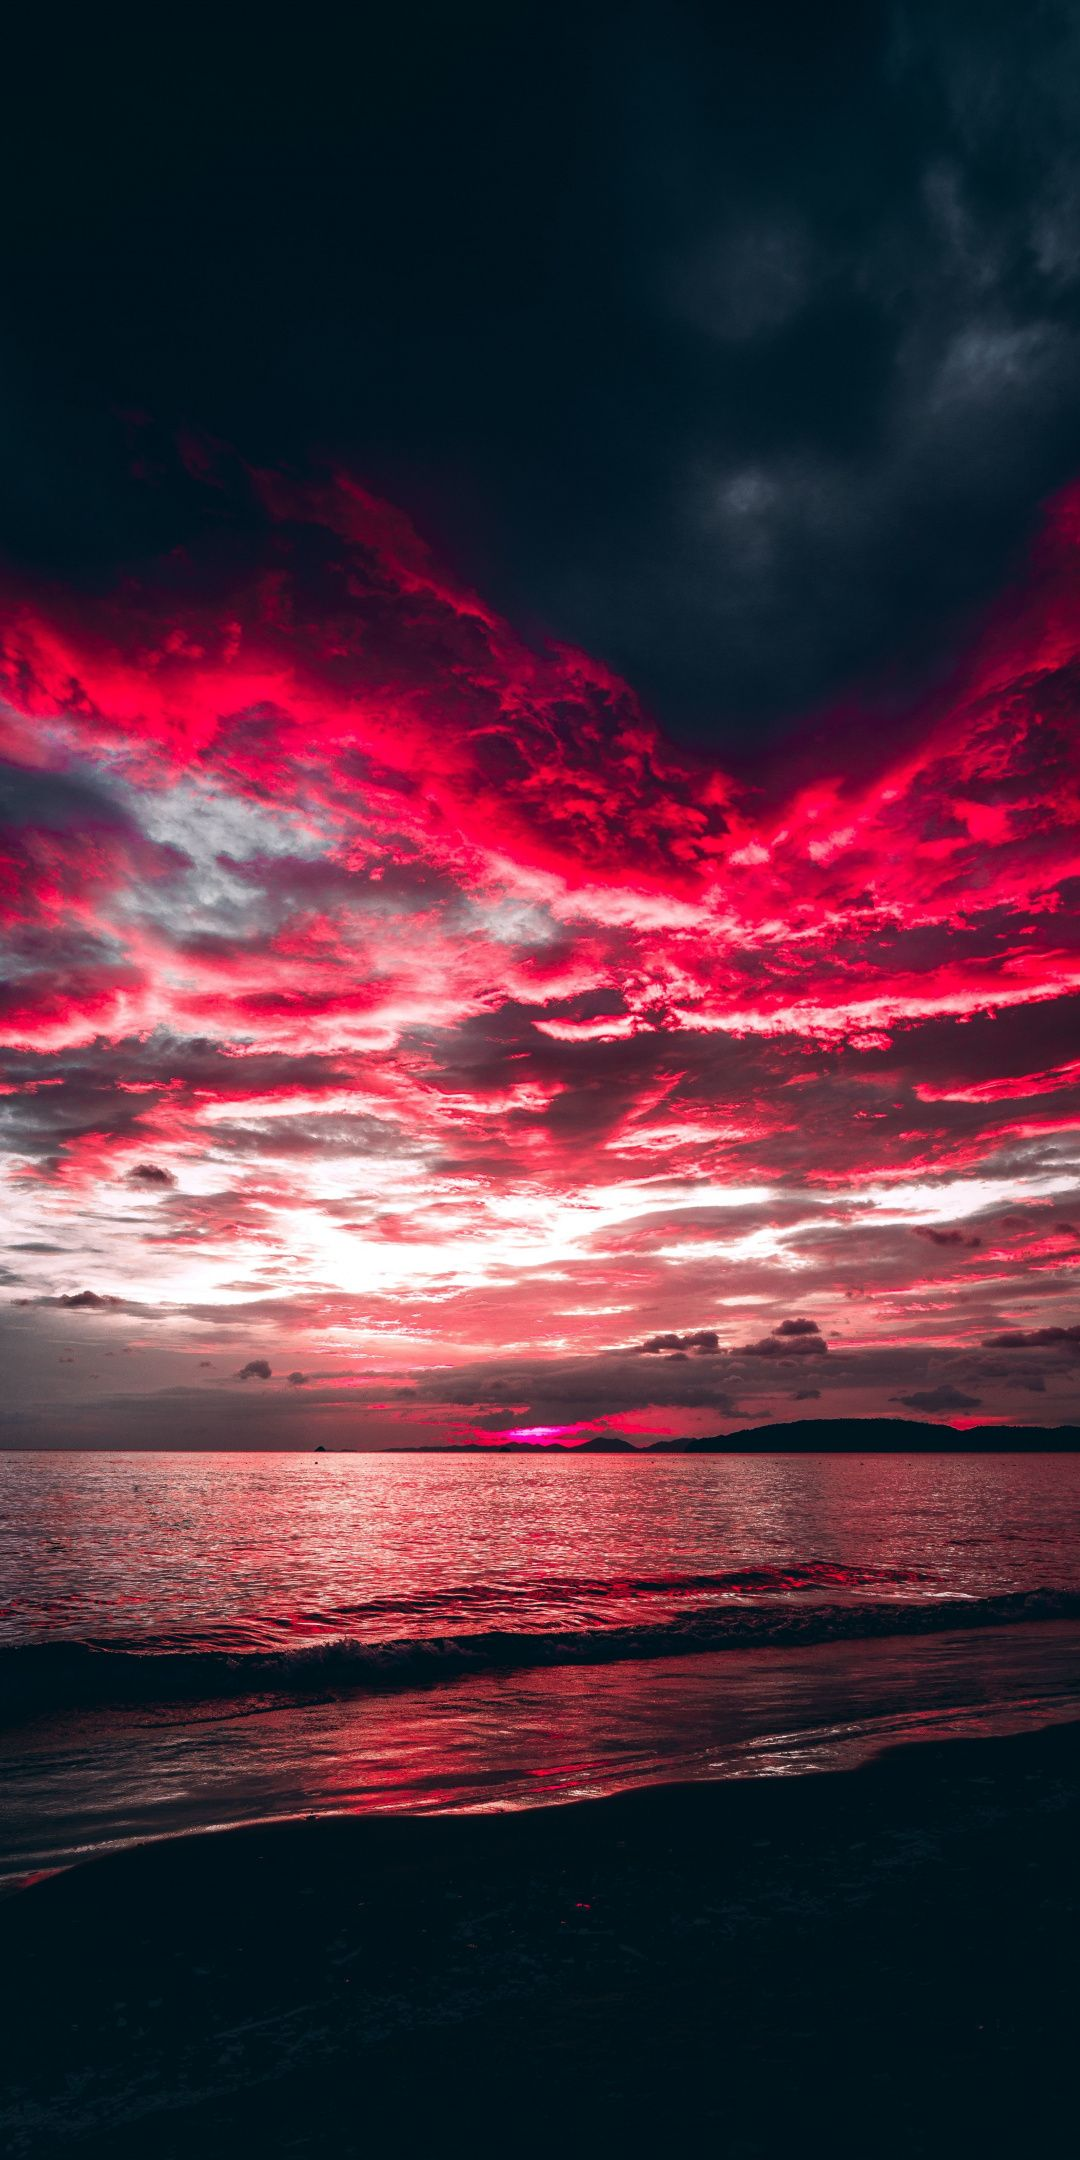 Sea Sunset Red Clouds Nature 1080x2160 Wallpaper Maroon Aesthetic Sunset Wallpaper Aesthetic Wallpapers Hd wallpaper sunset clouds road hills